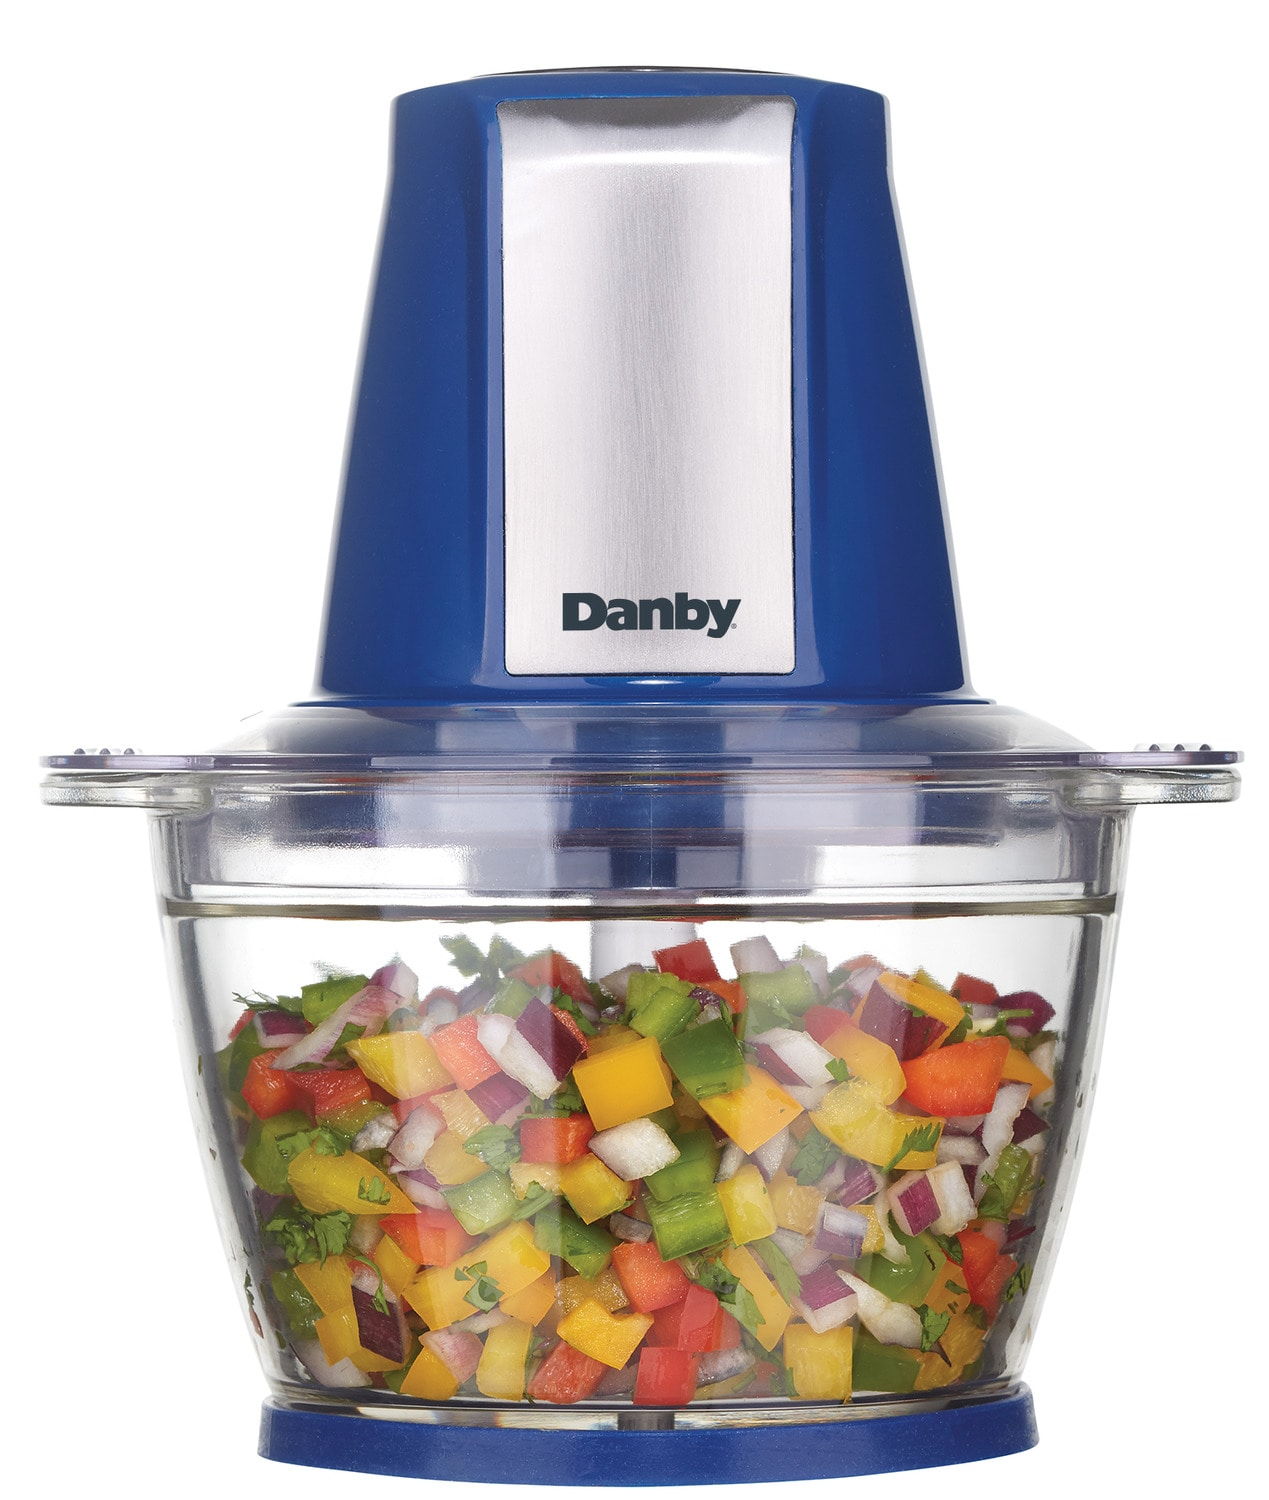 Cooking Products - Danby Blue Food Chopper (500 mL) - DFC40C1SSDB